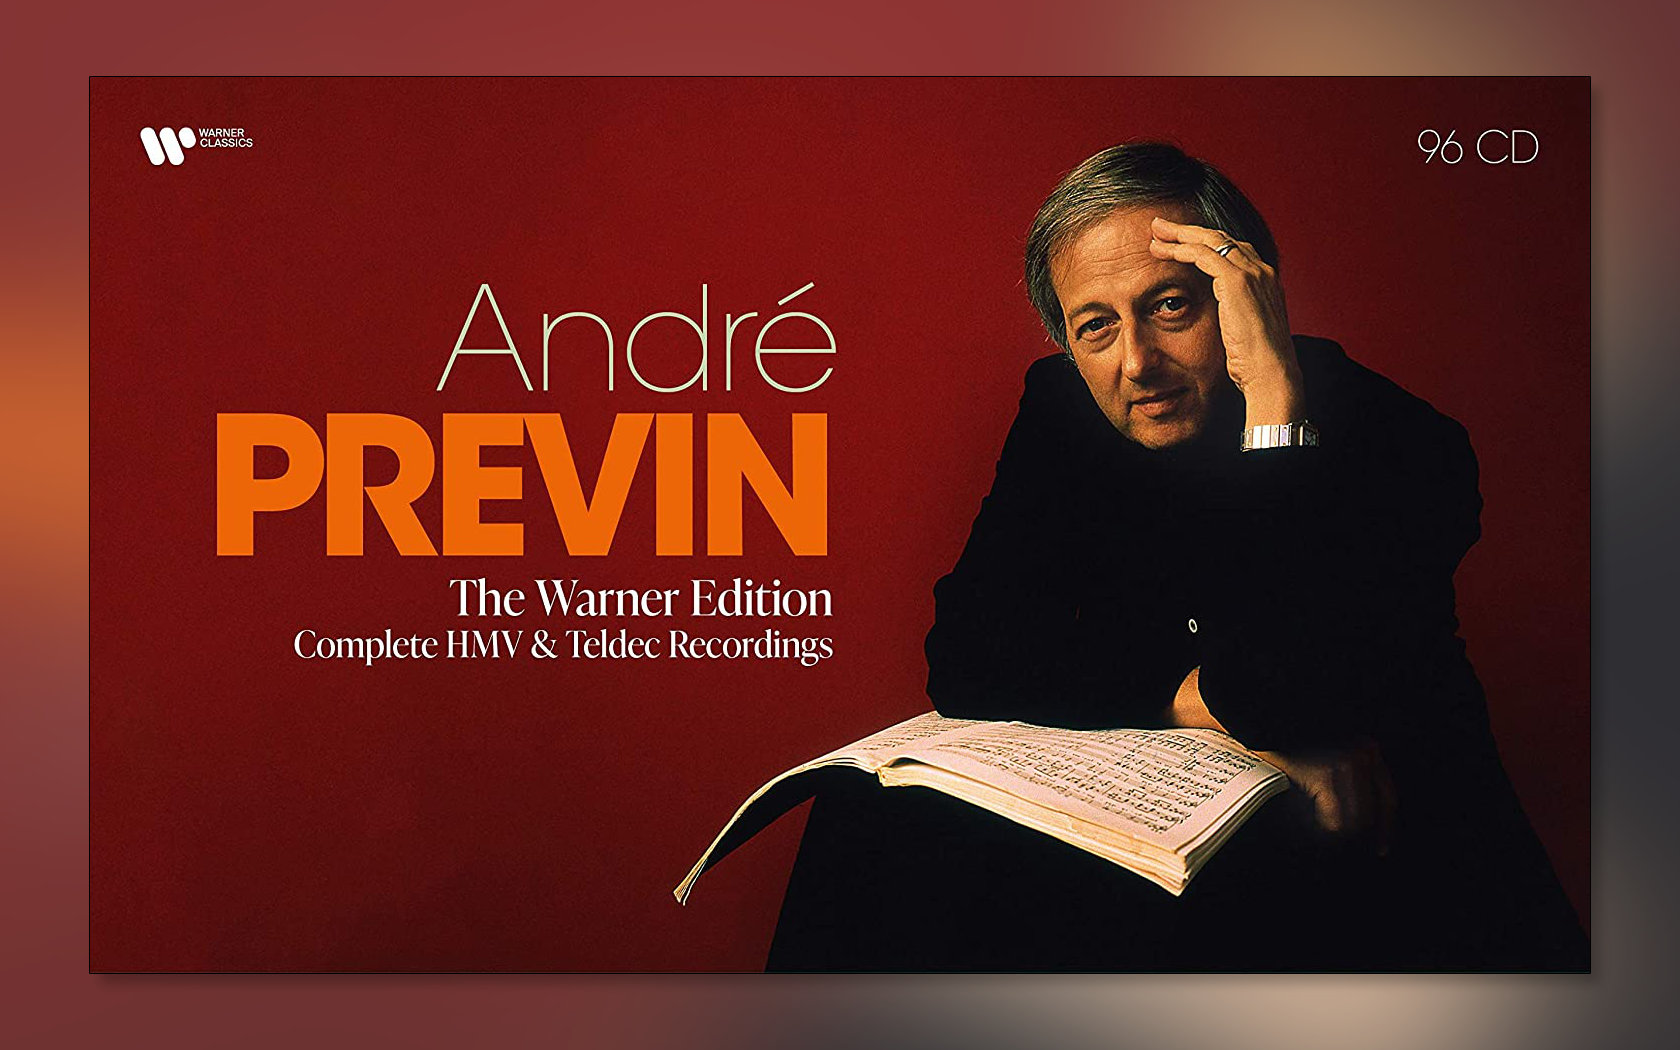 Andre Previn - The Warner Edition